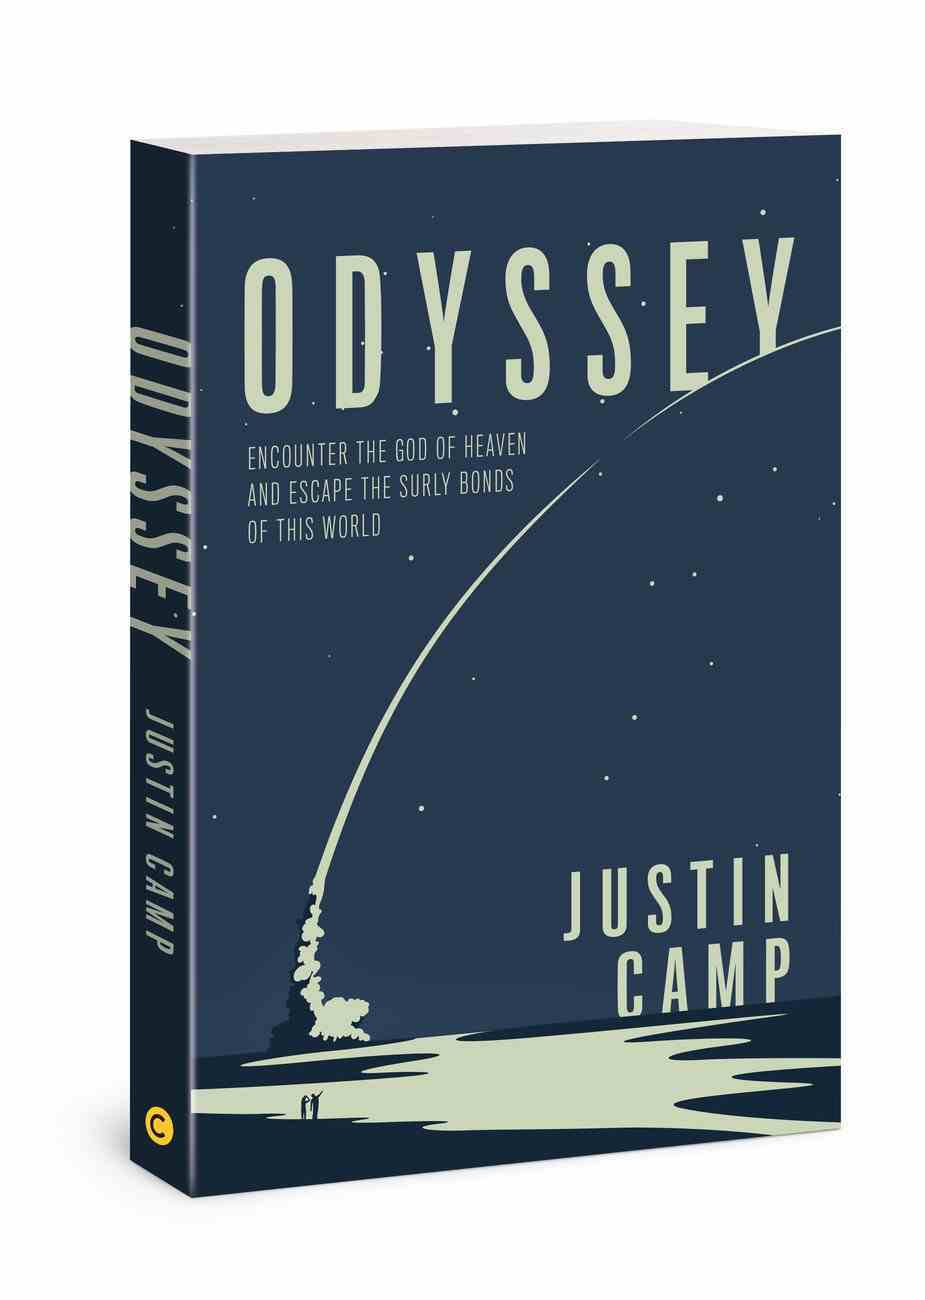 Odyssey: Encounter the God of Heaven to Ignite Your Heart on Earth Paperback